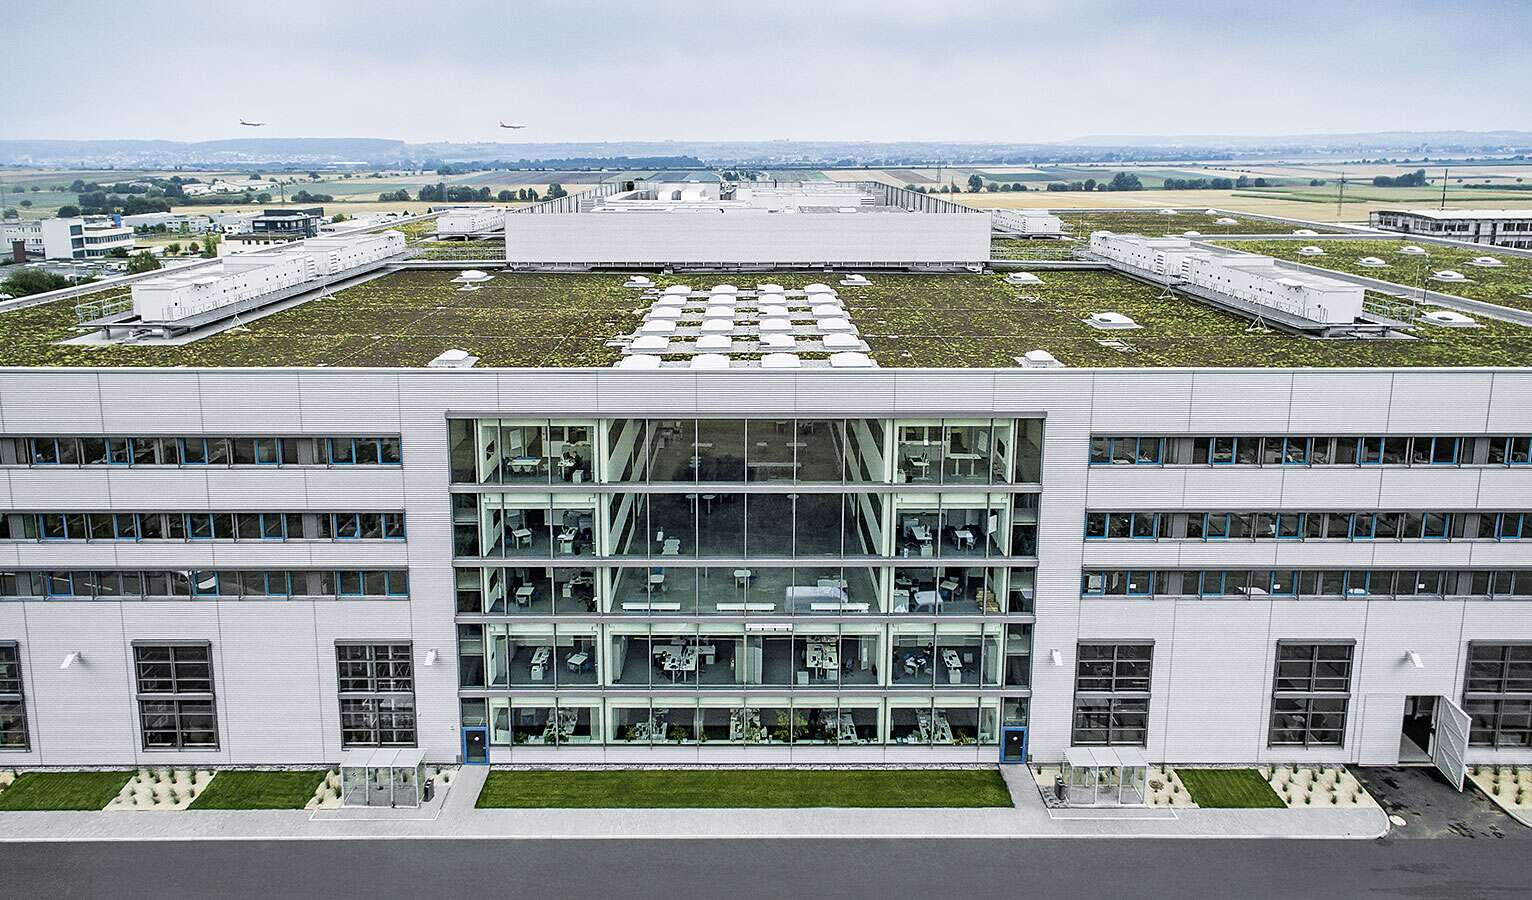 Sustainable construction: the Scharnhausen Technology Plant